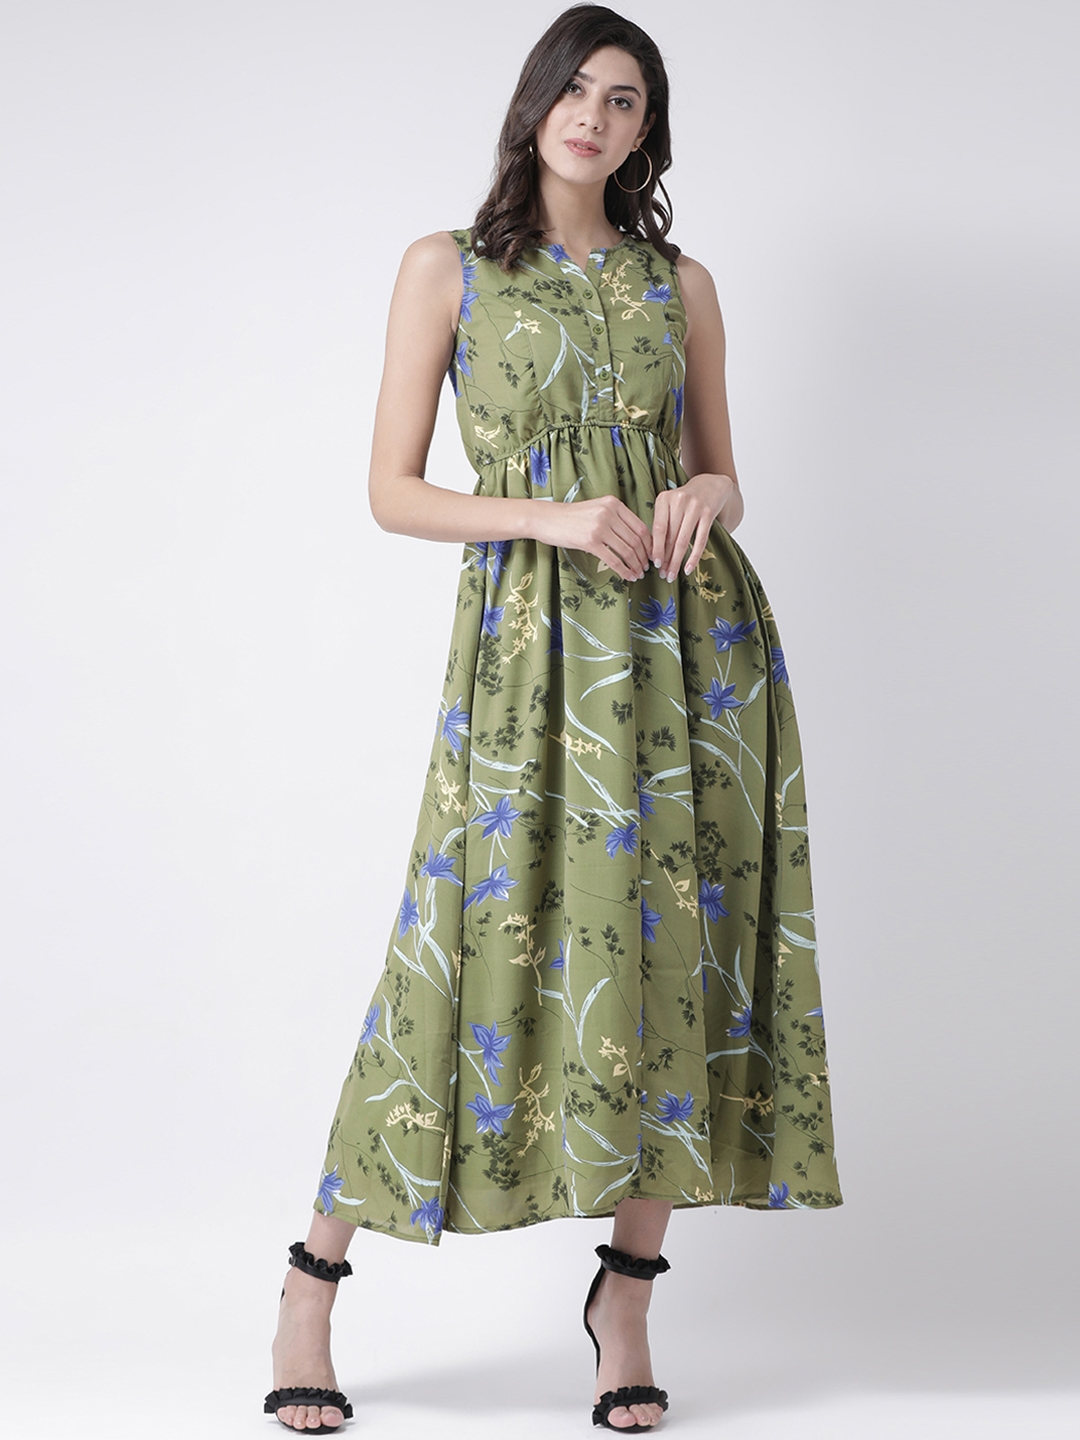 The Vanca Women Green Printed Fit and Flare Dress